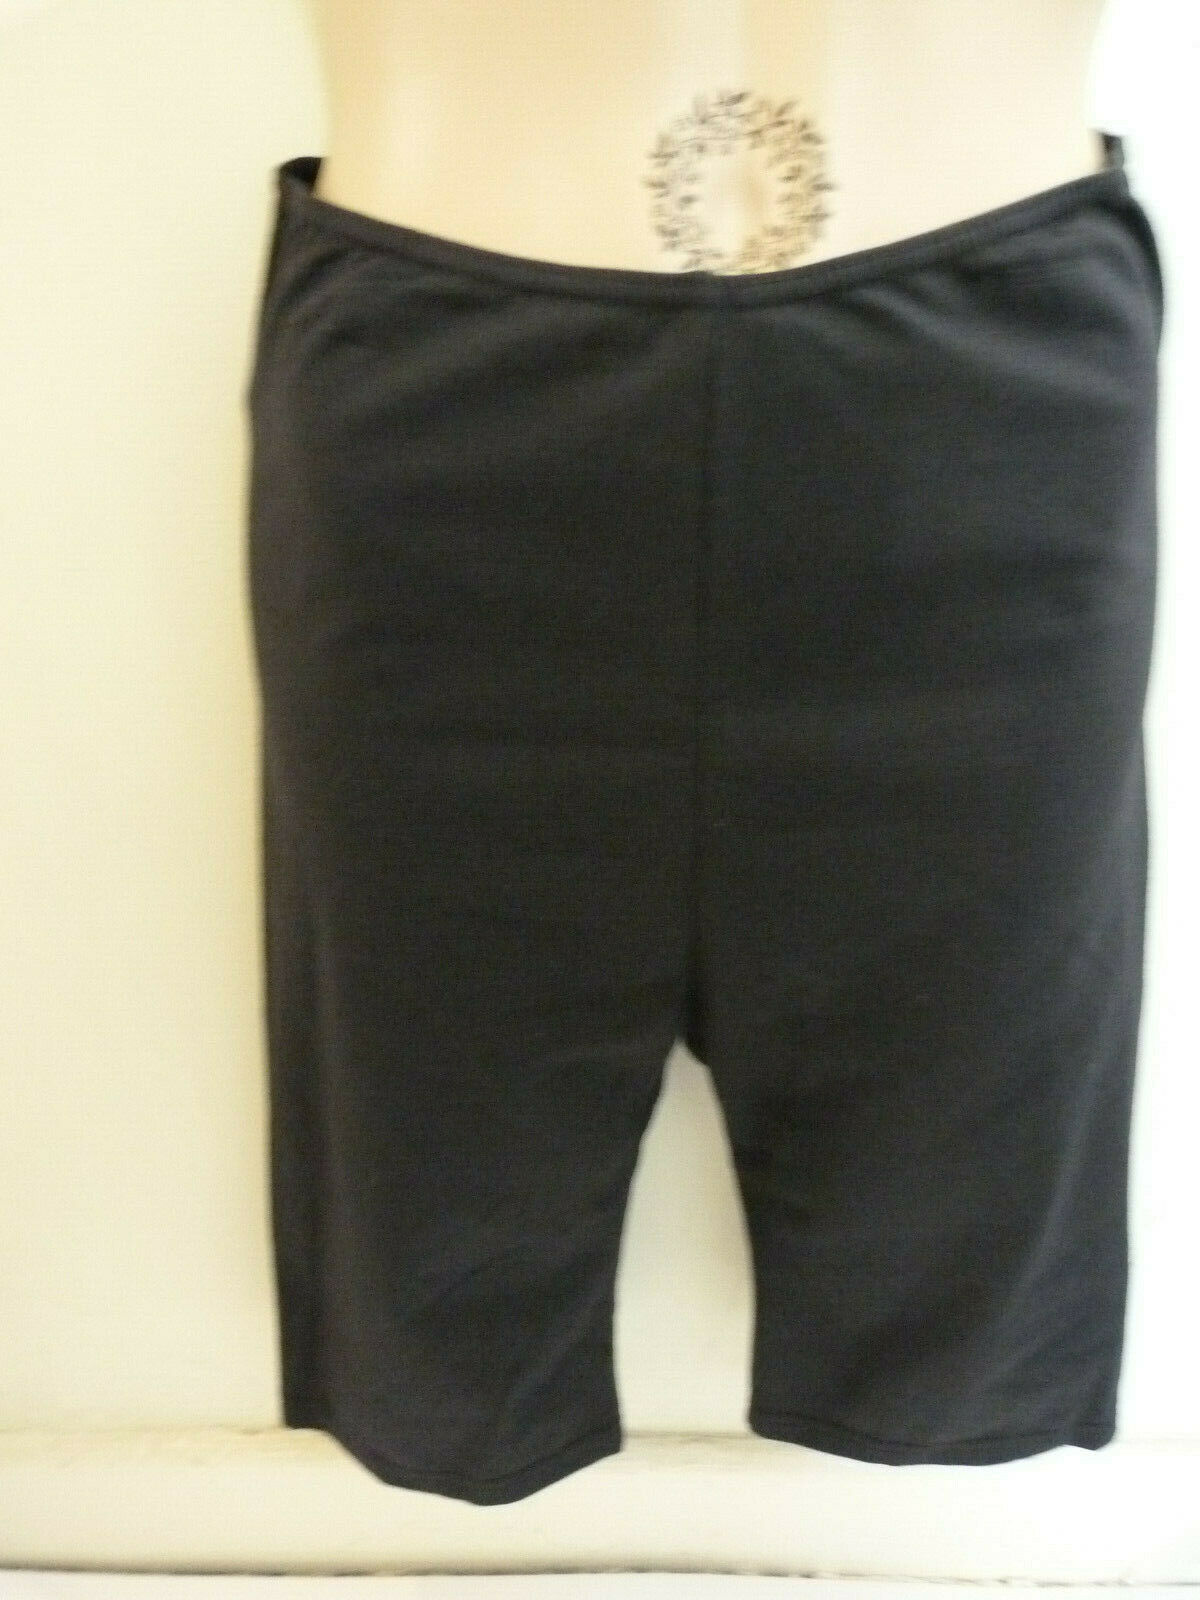 Unworn black cotton lycra cycle shorts by Freed of London. R